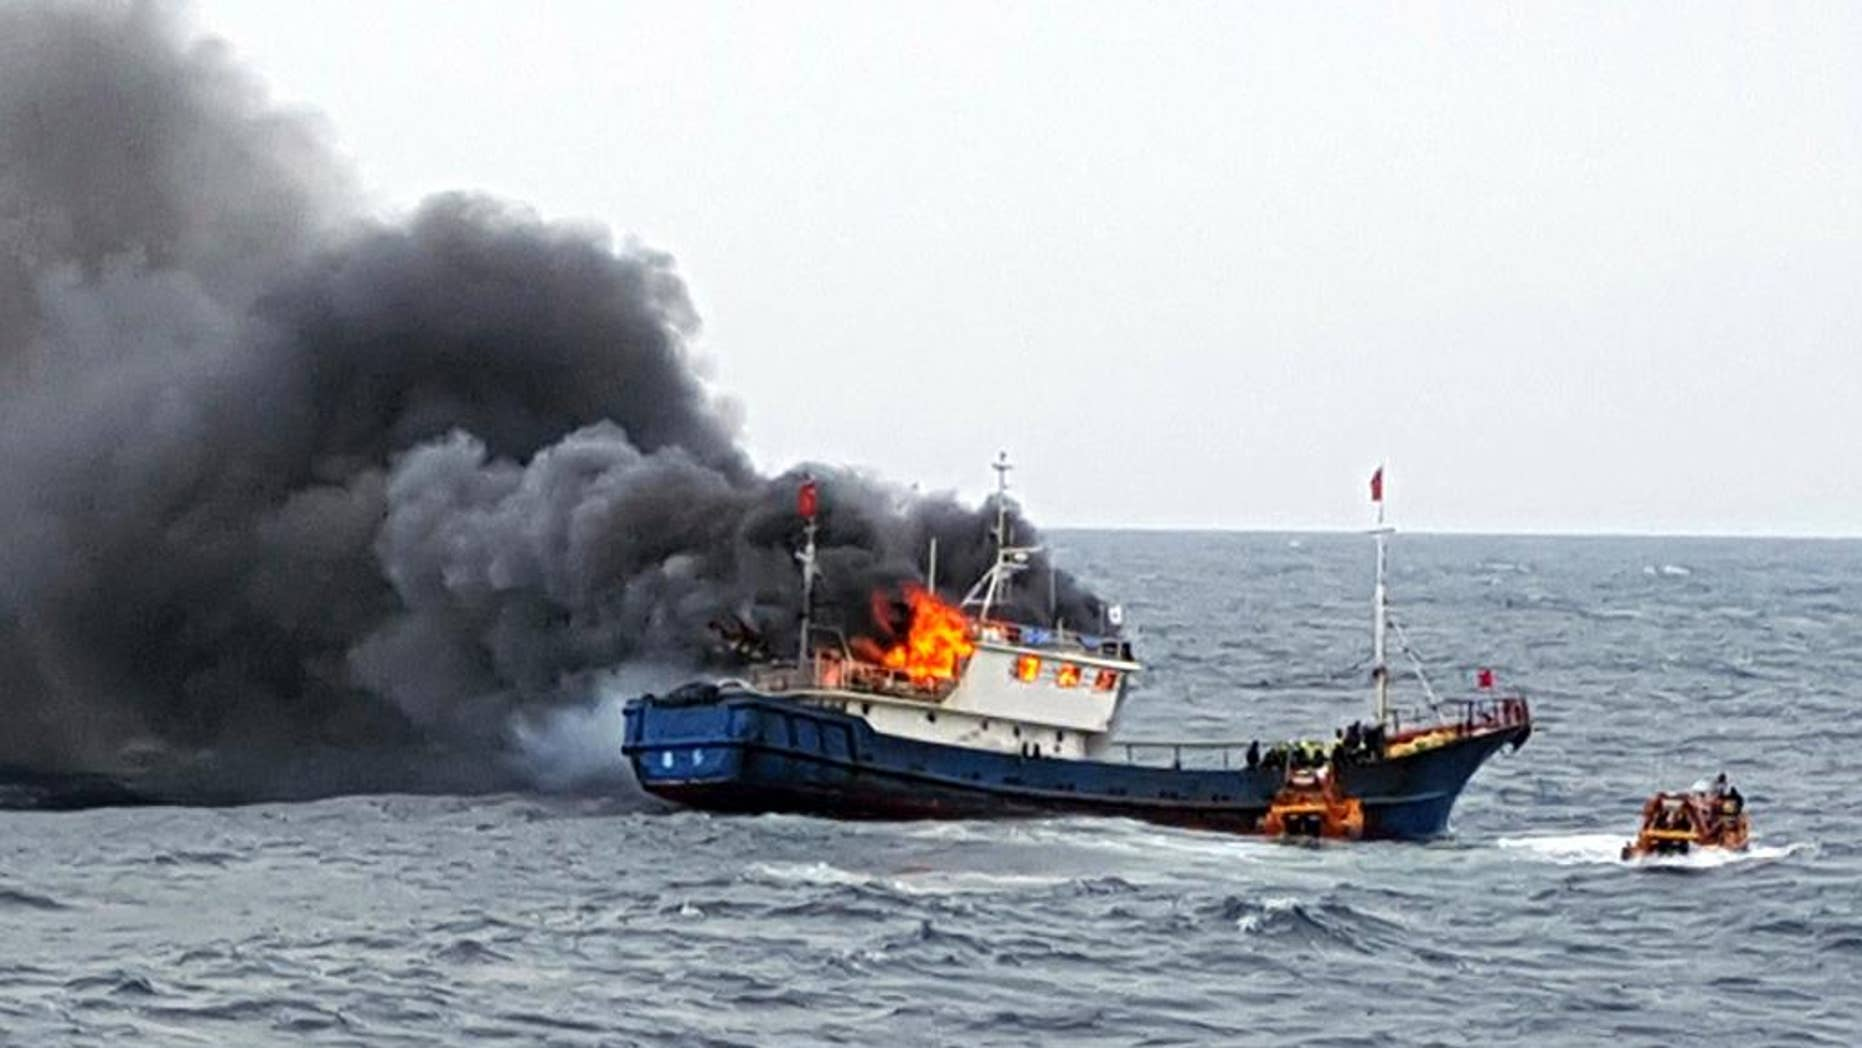 In this Thursday, Sept. 29, 2016 photo provided by the South Korean Mokpo Coast Guard, a Chinese fishing boat catches fires during an inspection by the South Korean coast guard in the water off Hong Island, South Korea. South Korea's coast guard said three Chinese fishermen have been found dead when a fire broke out on their boat after the coast guard fired a flashbang grenade at the vessel to stop it. (South Korean Mokpo Coast Guard via AP)